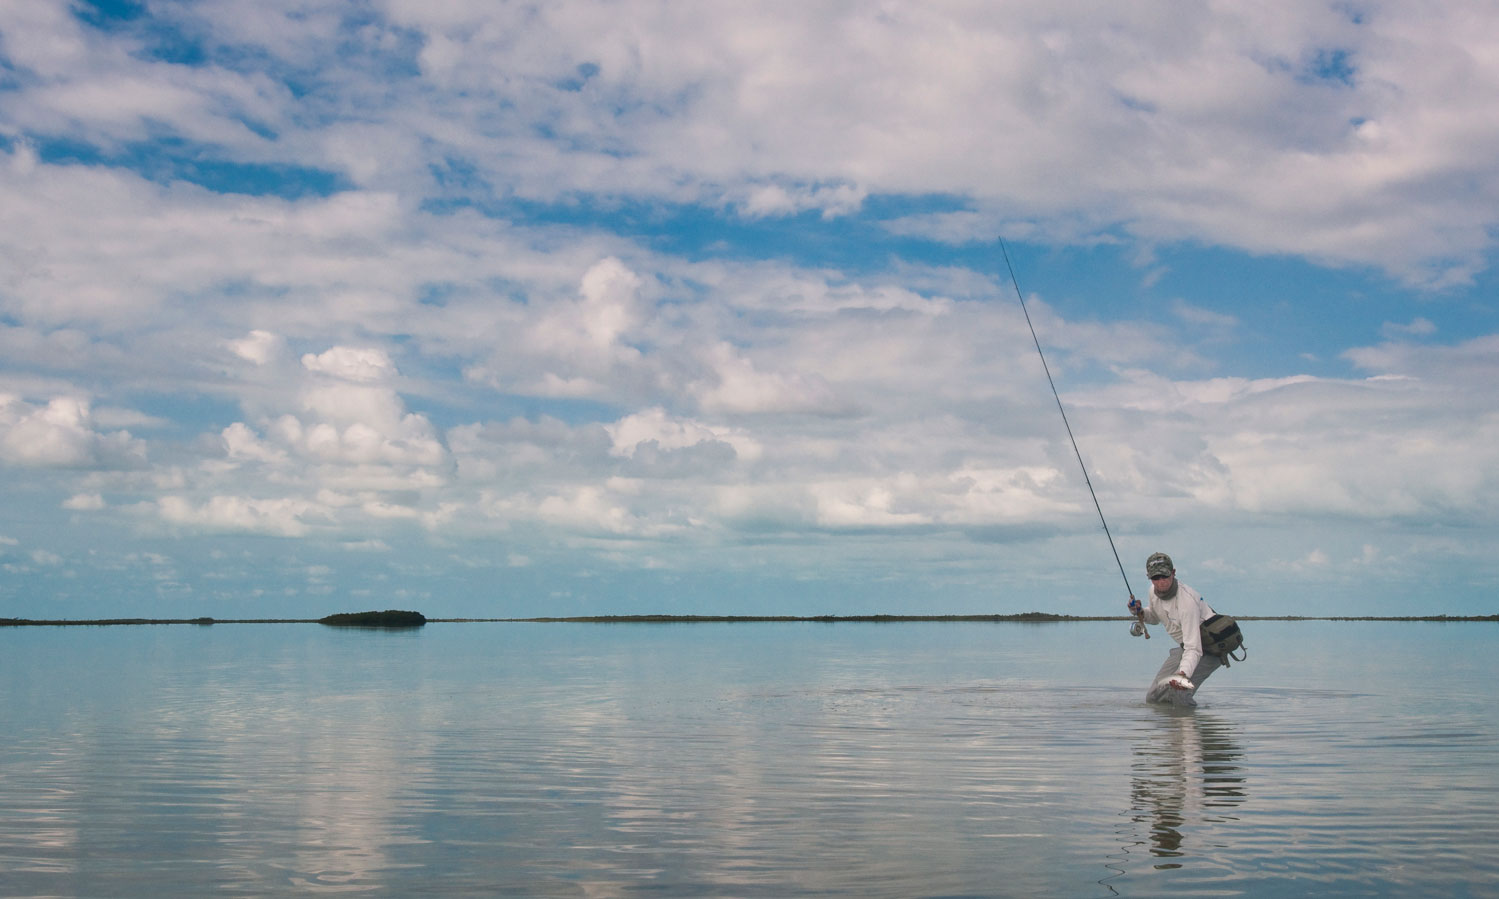 The road to diy bonefish fly fishing gink and gasoline how photo by louis cahill solutioingenieria Image collections